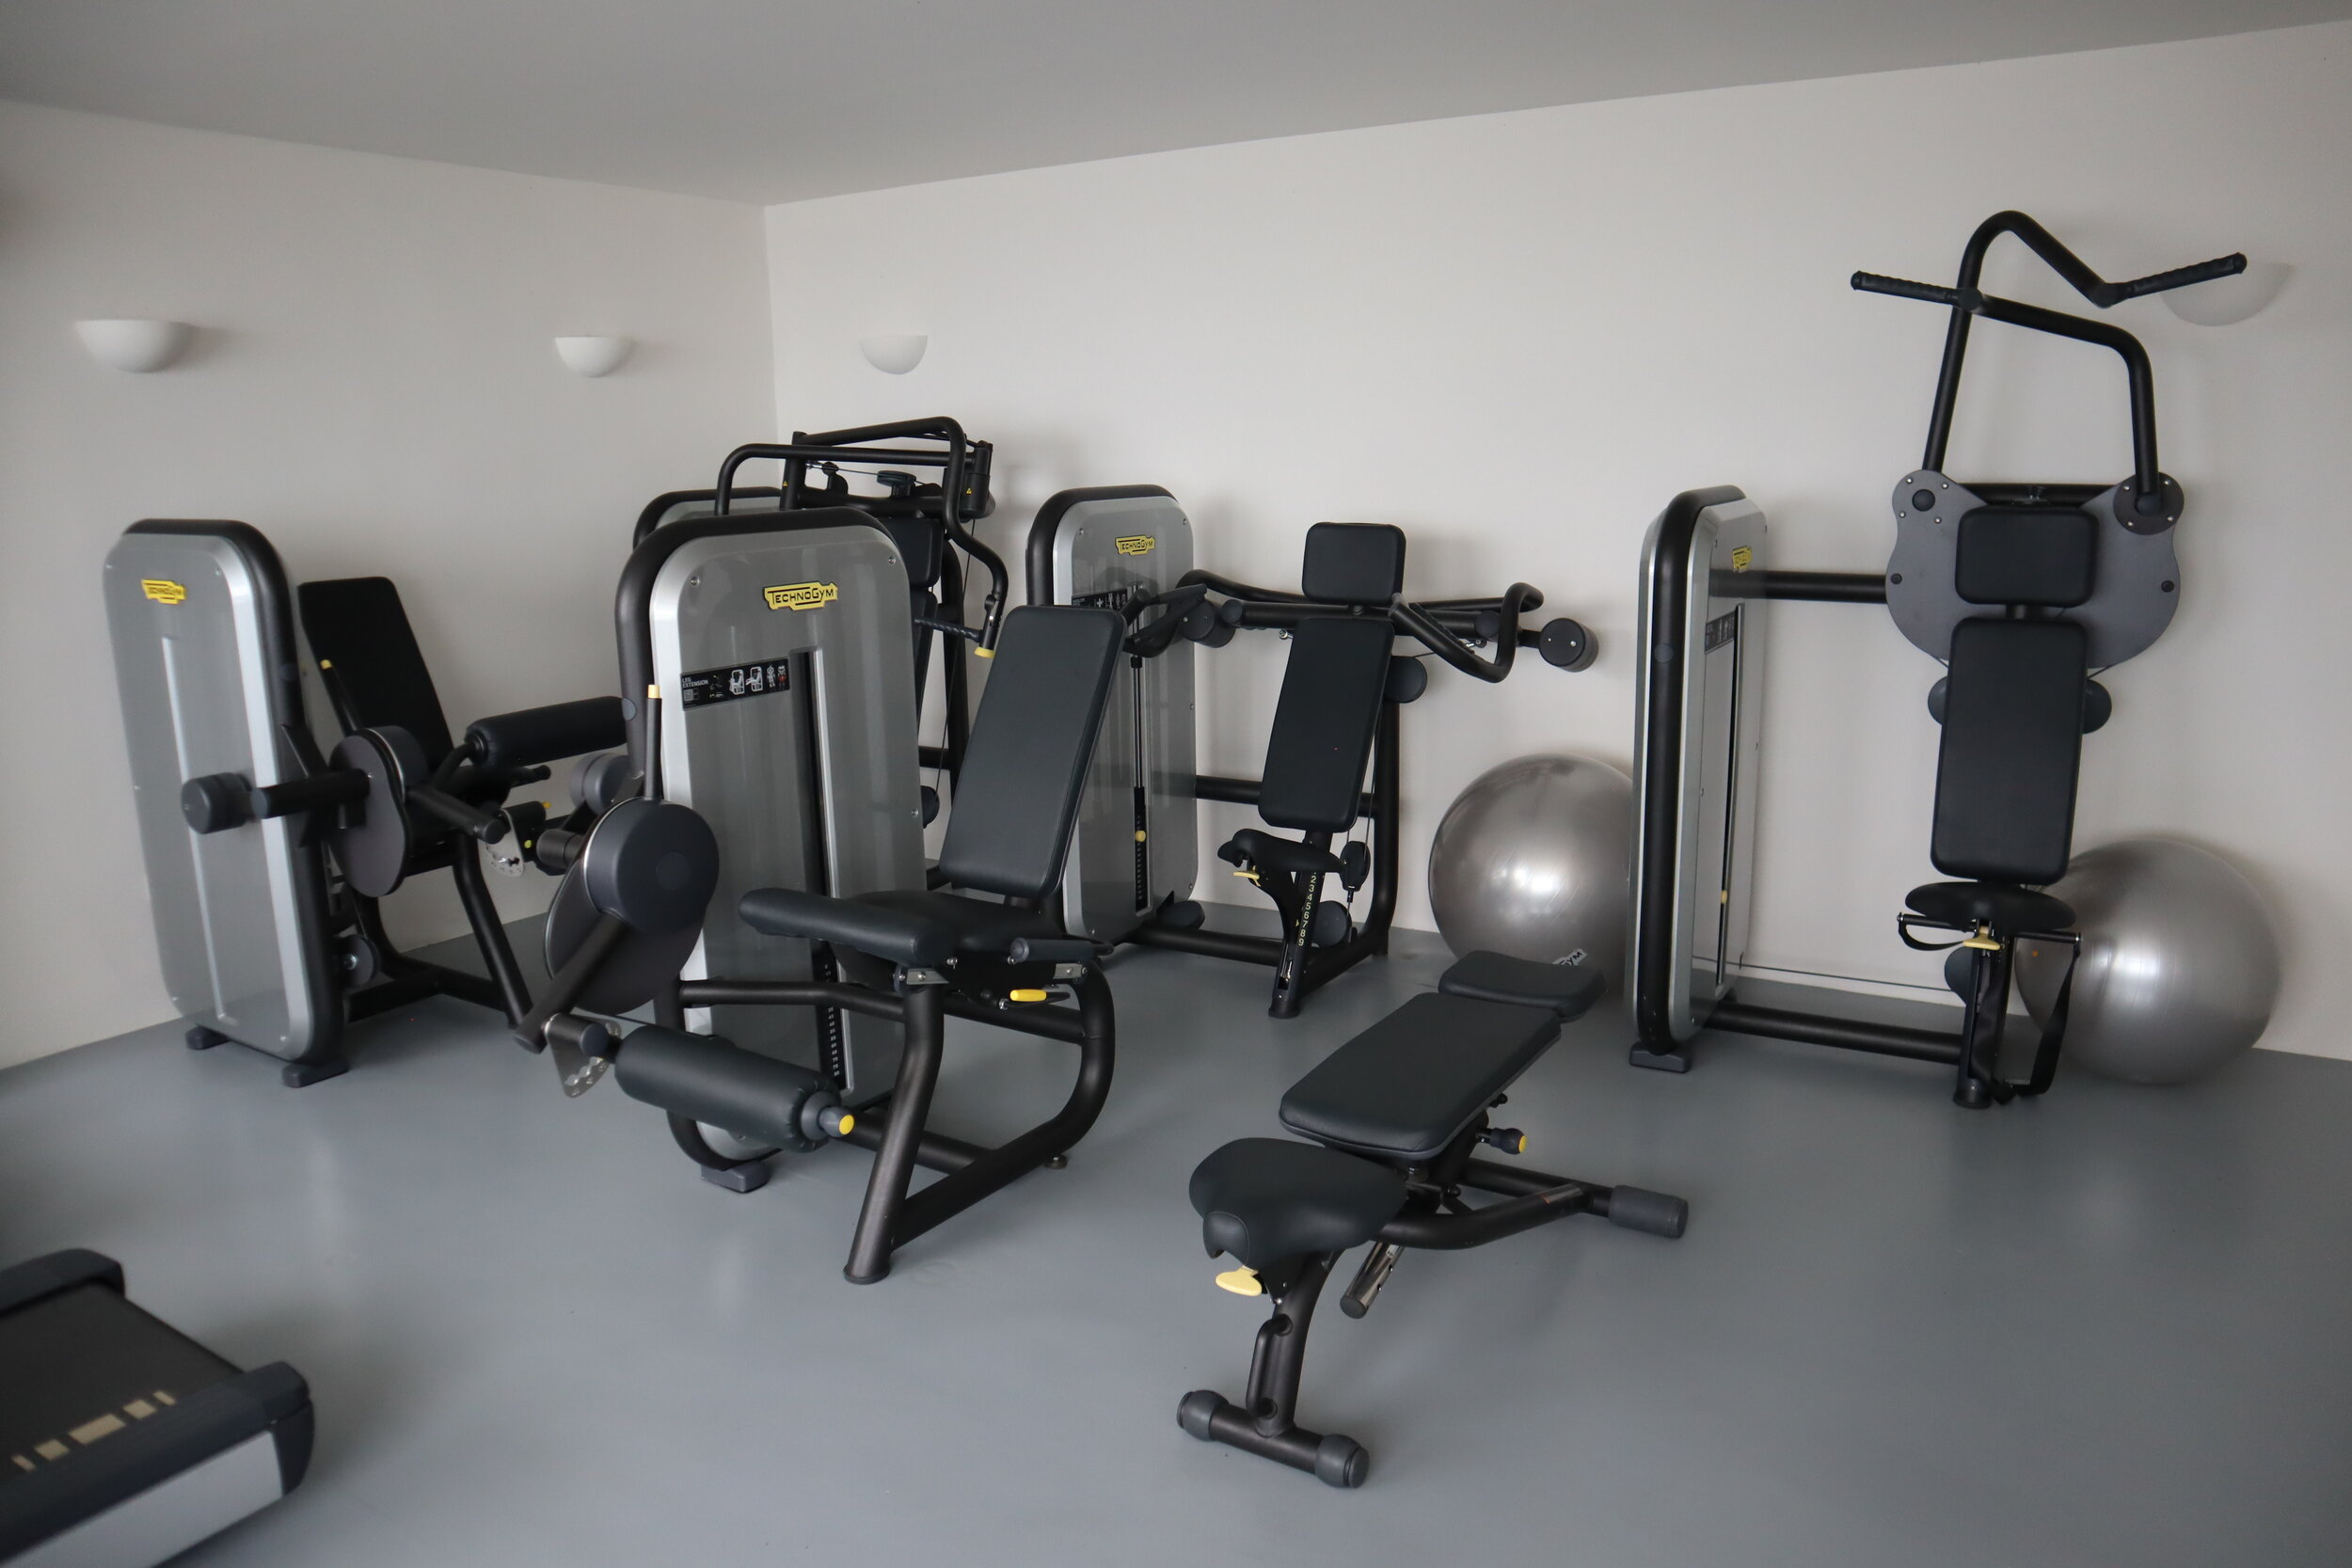 Mystique Santorini – Gym equipment